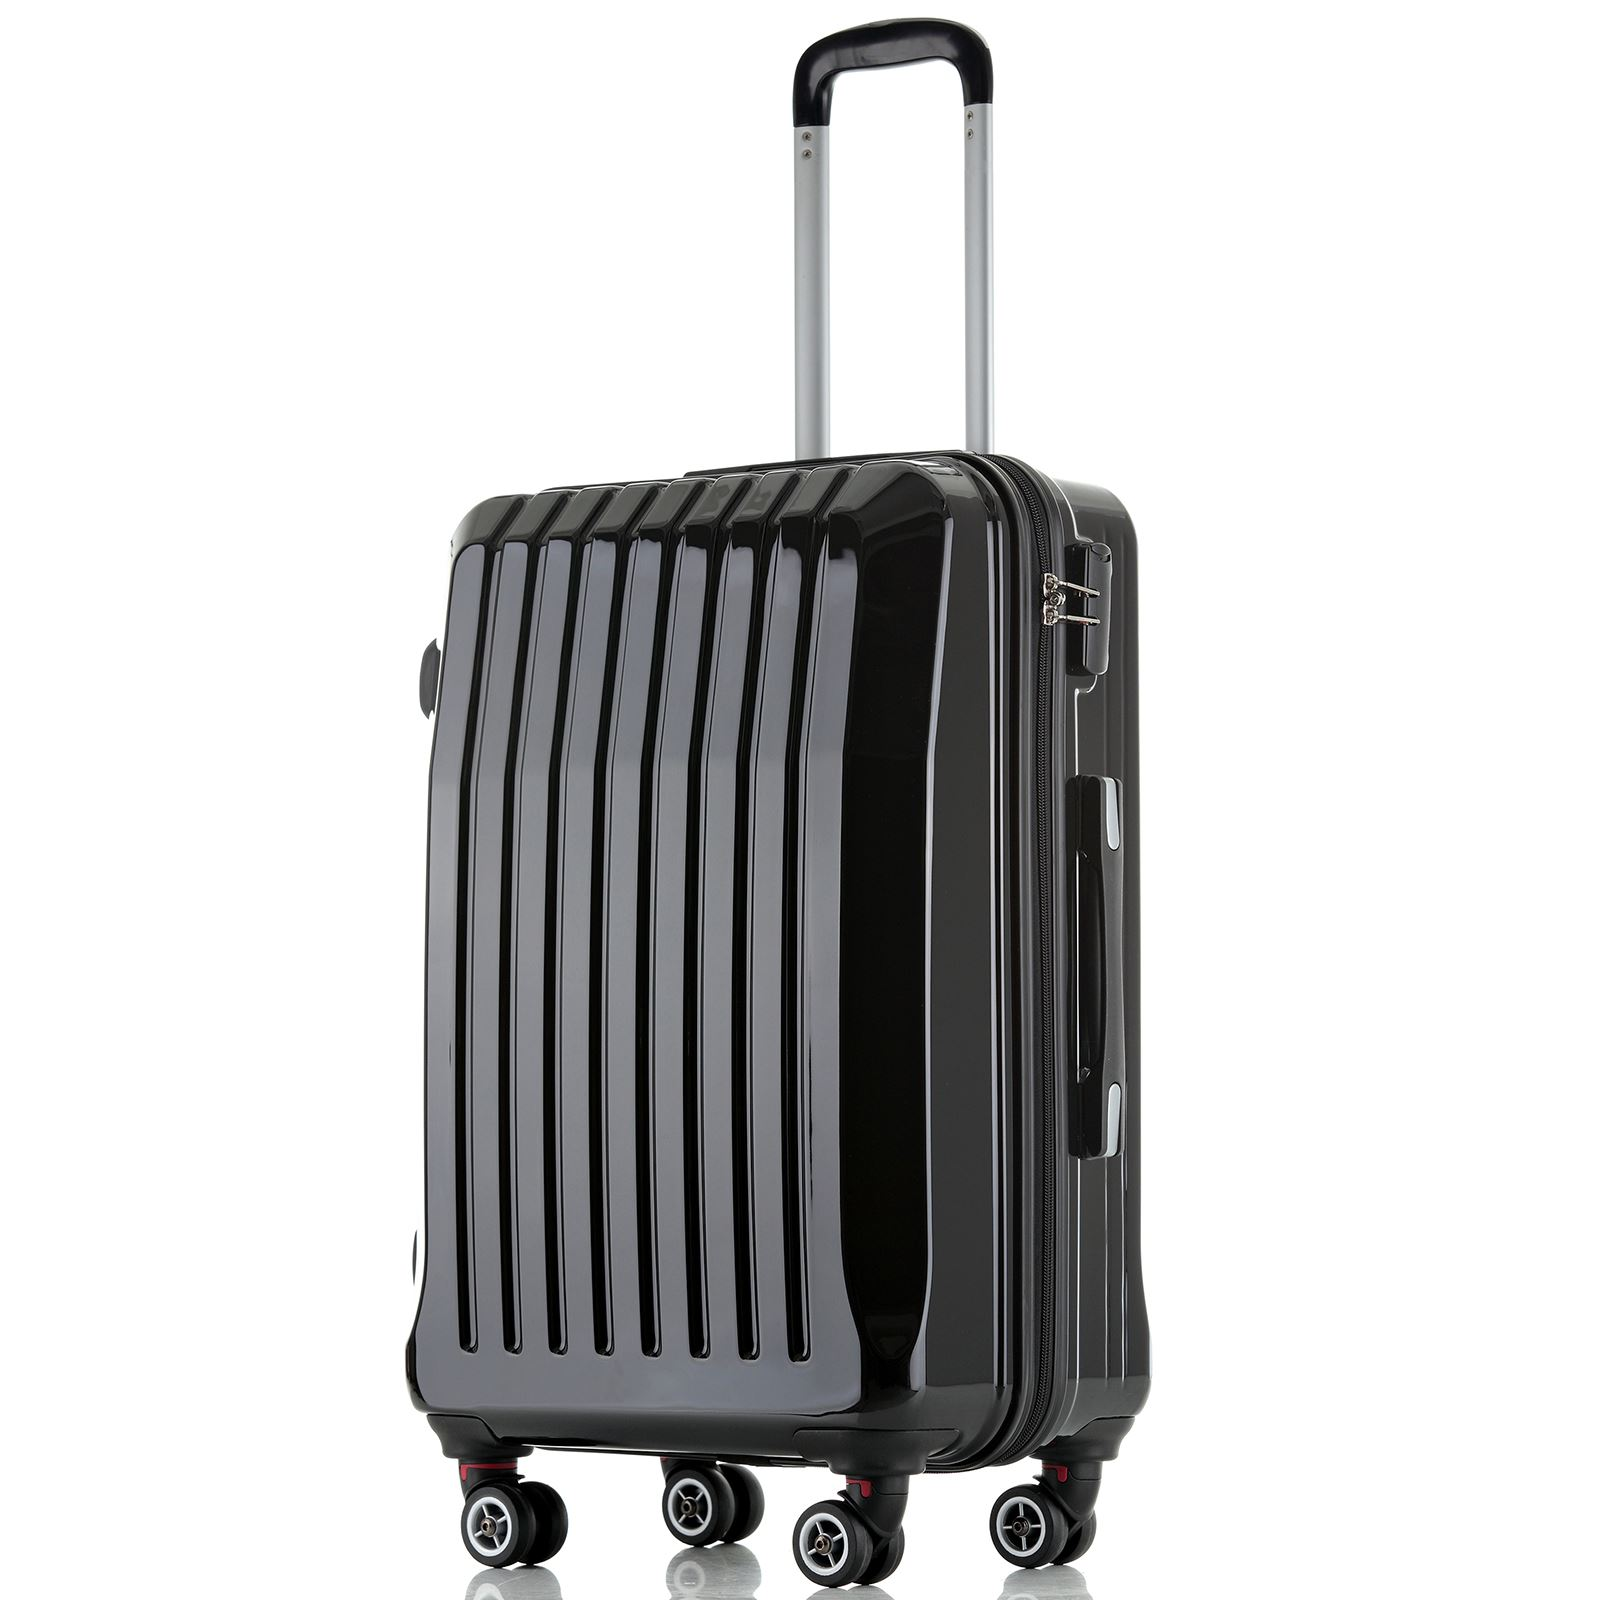 How to Choose Hard Case Luggage